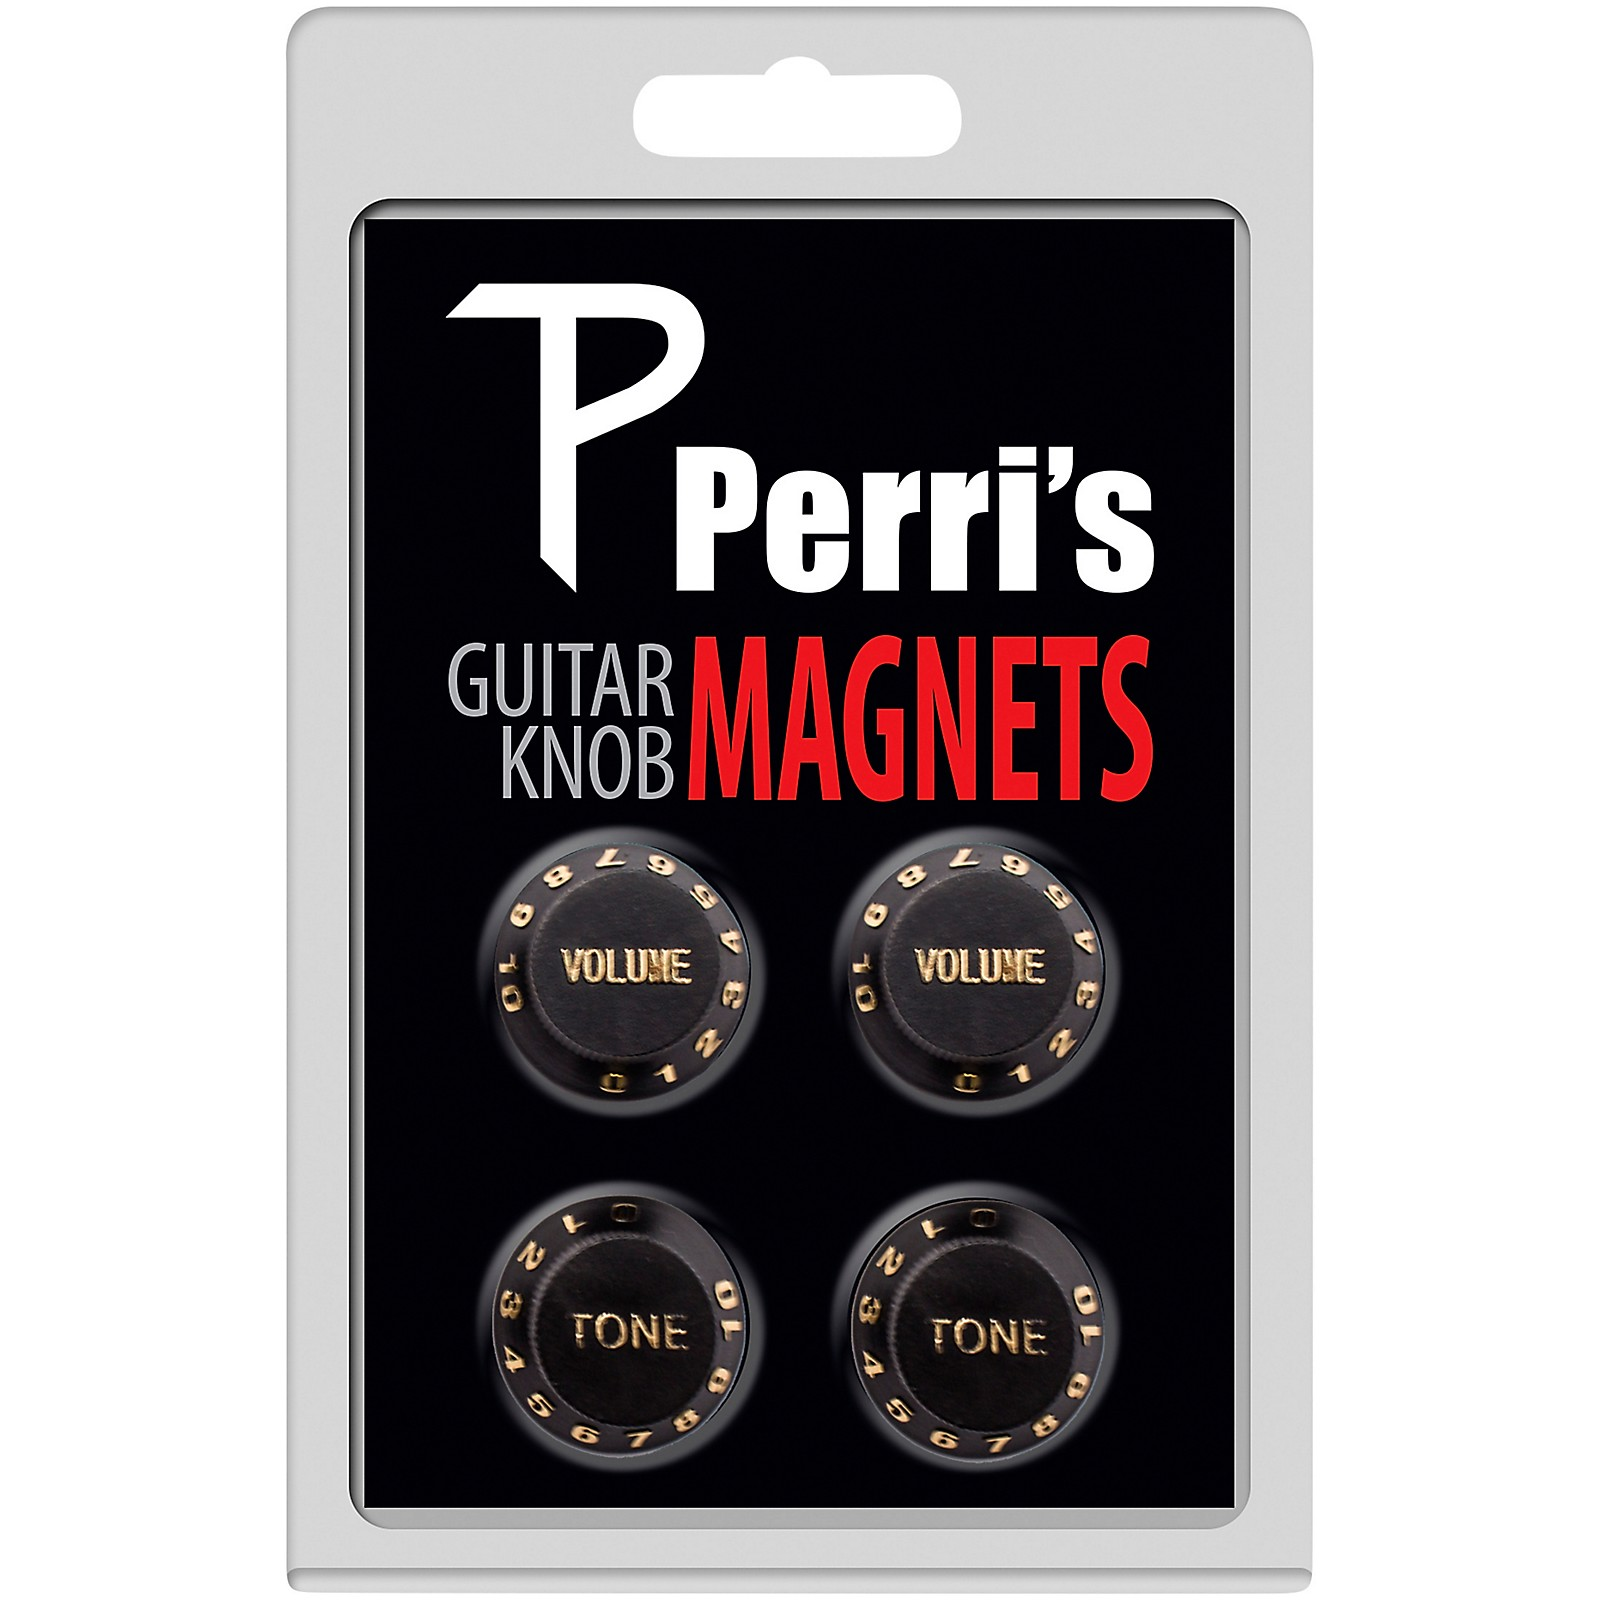 Perri's Guitar Knob Fridge Magnets - 4 Pack - Black